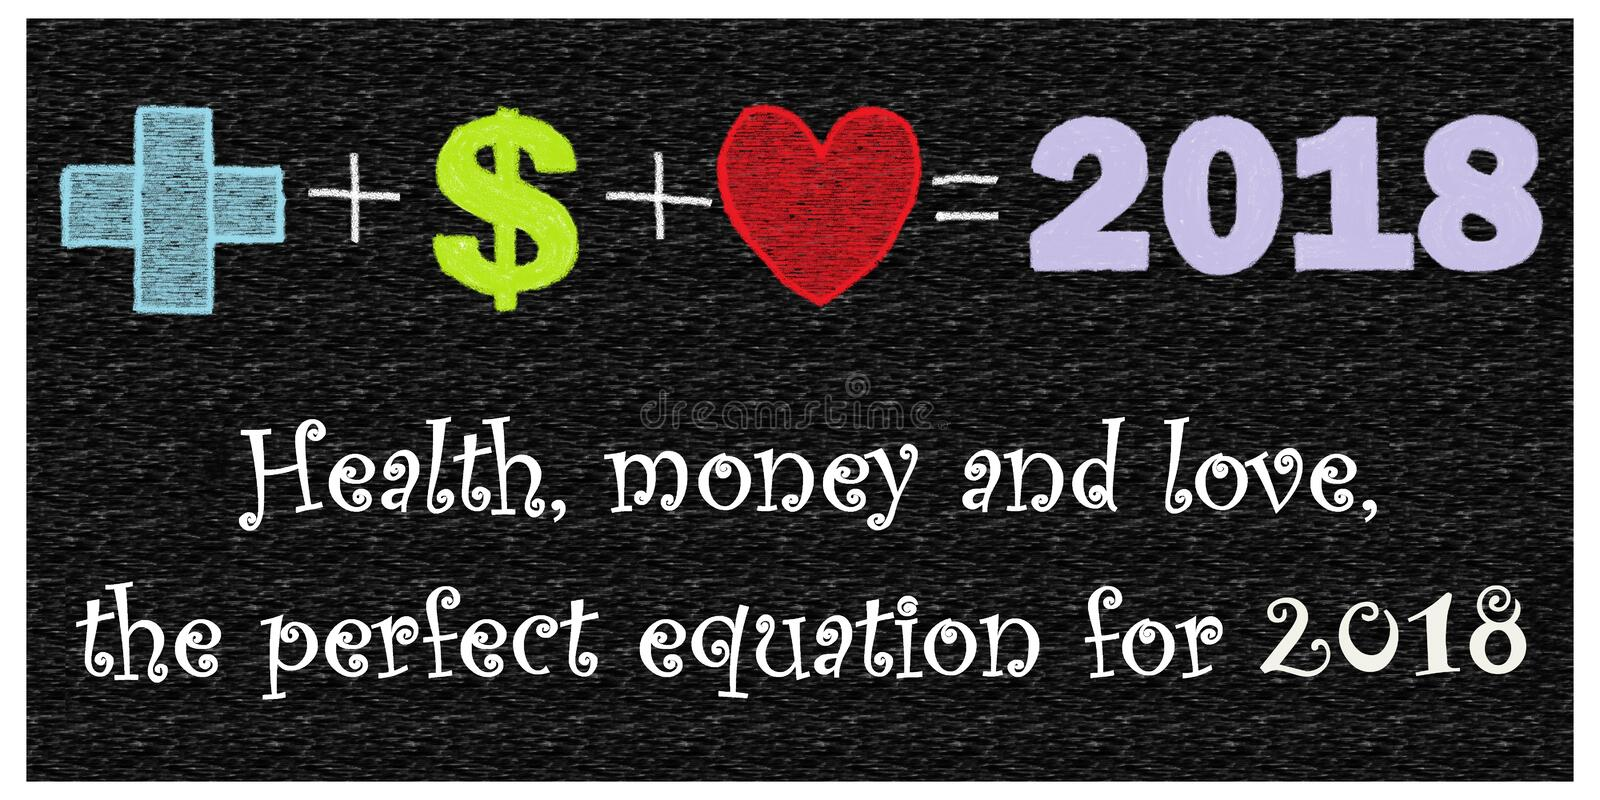 Health, money and love, the perfect equation for 2018. New Year greeting. Health, money and love, the perfect equation for 2018 stock illustration